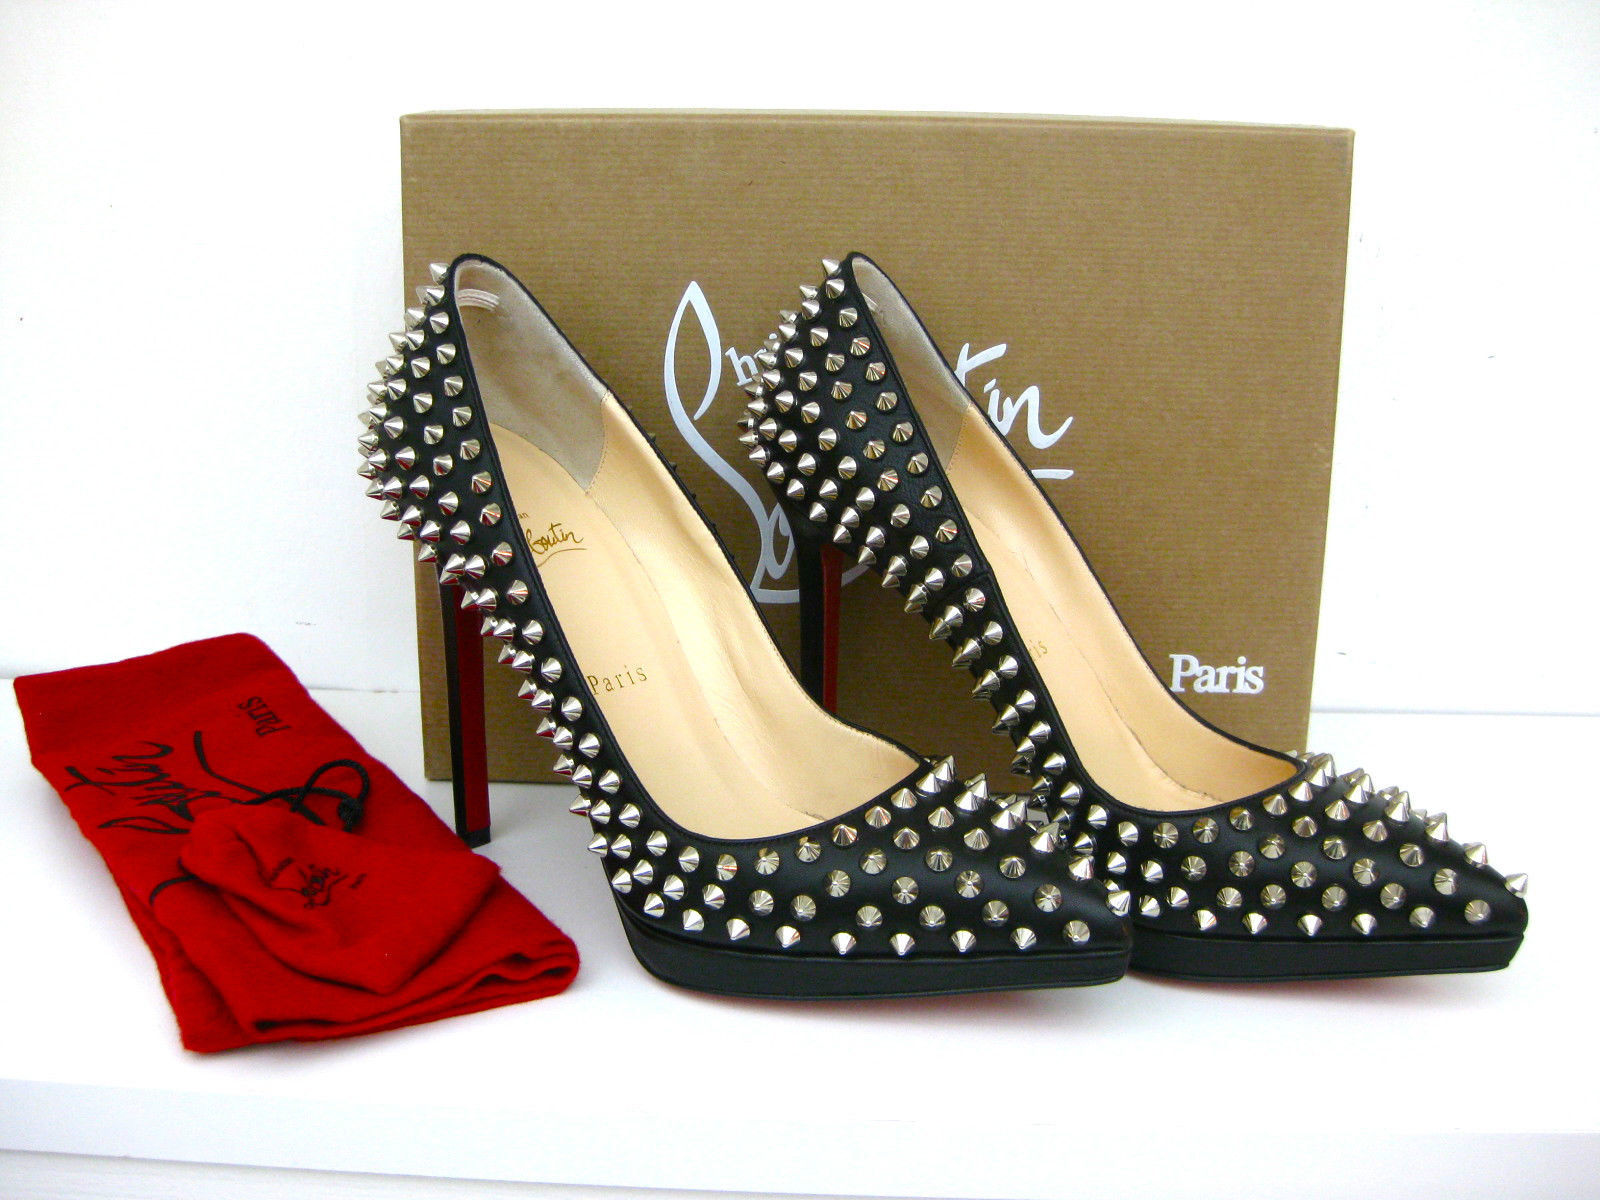 3413a26e5b7f Christian Louboutin Shoes Pigalle Plato Black Silver Spikes 120 heels S  39  NEW